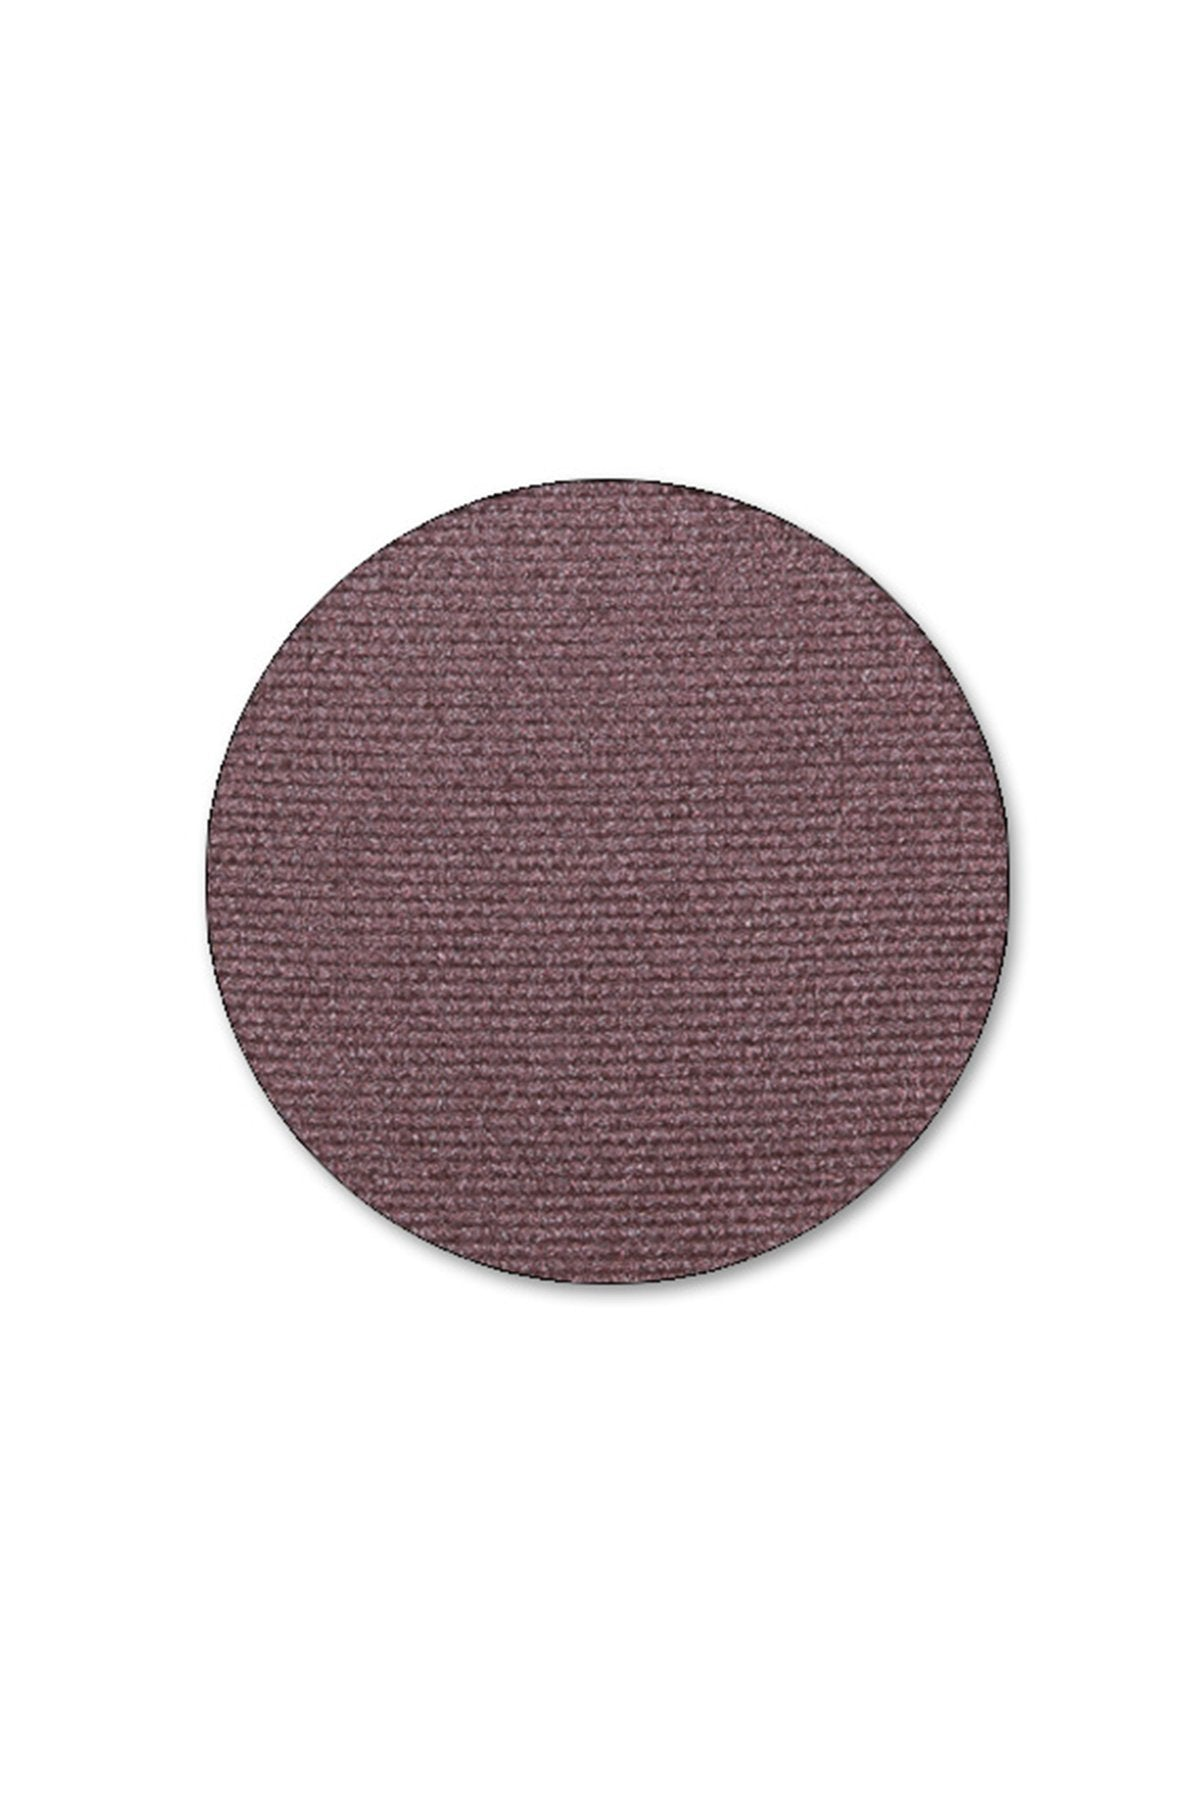 Eyeshadow Pan Shimmering Mauve-12, Eye - shopdyi.com